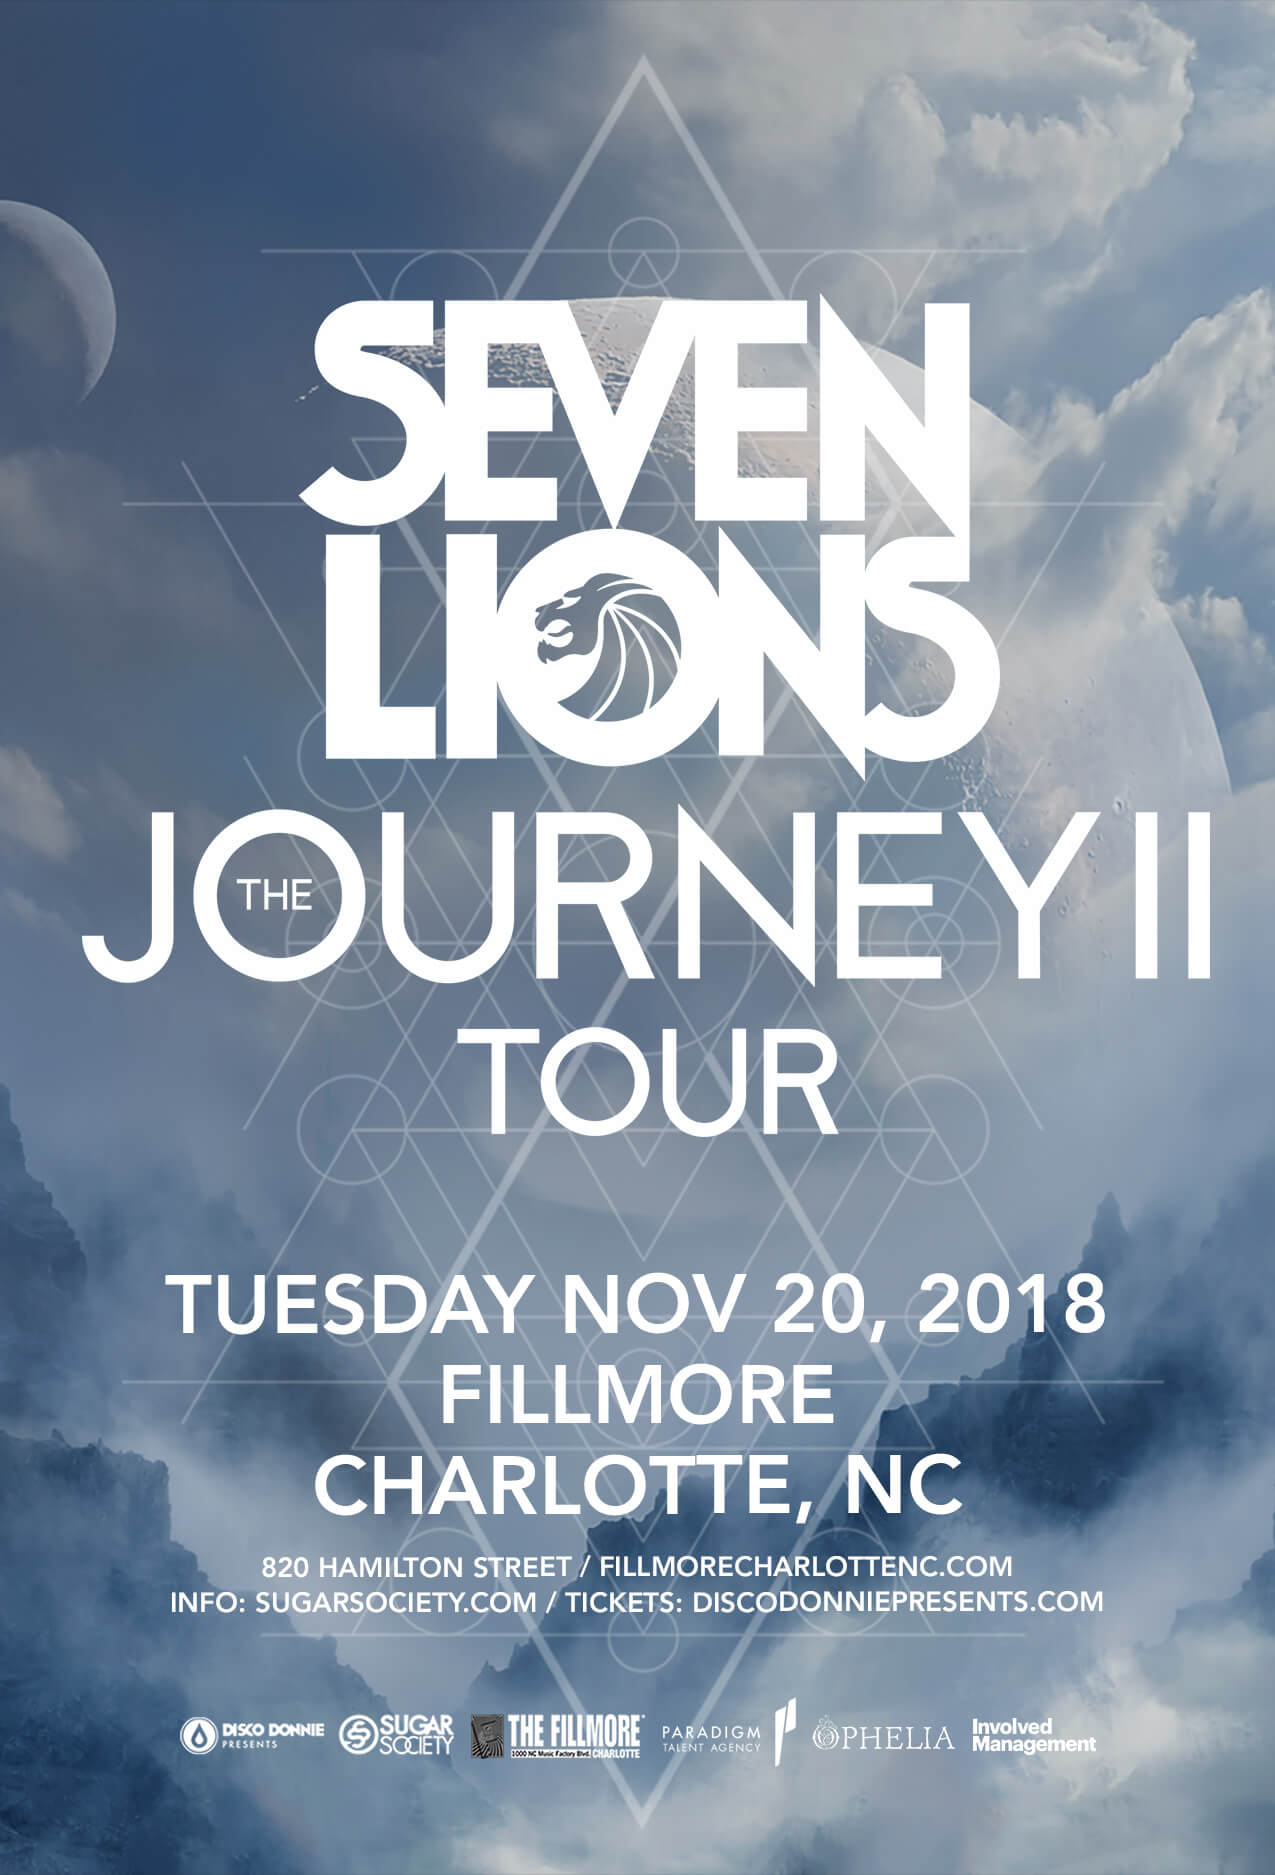 Seven Lions in Charlotte